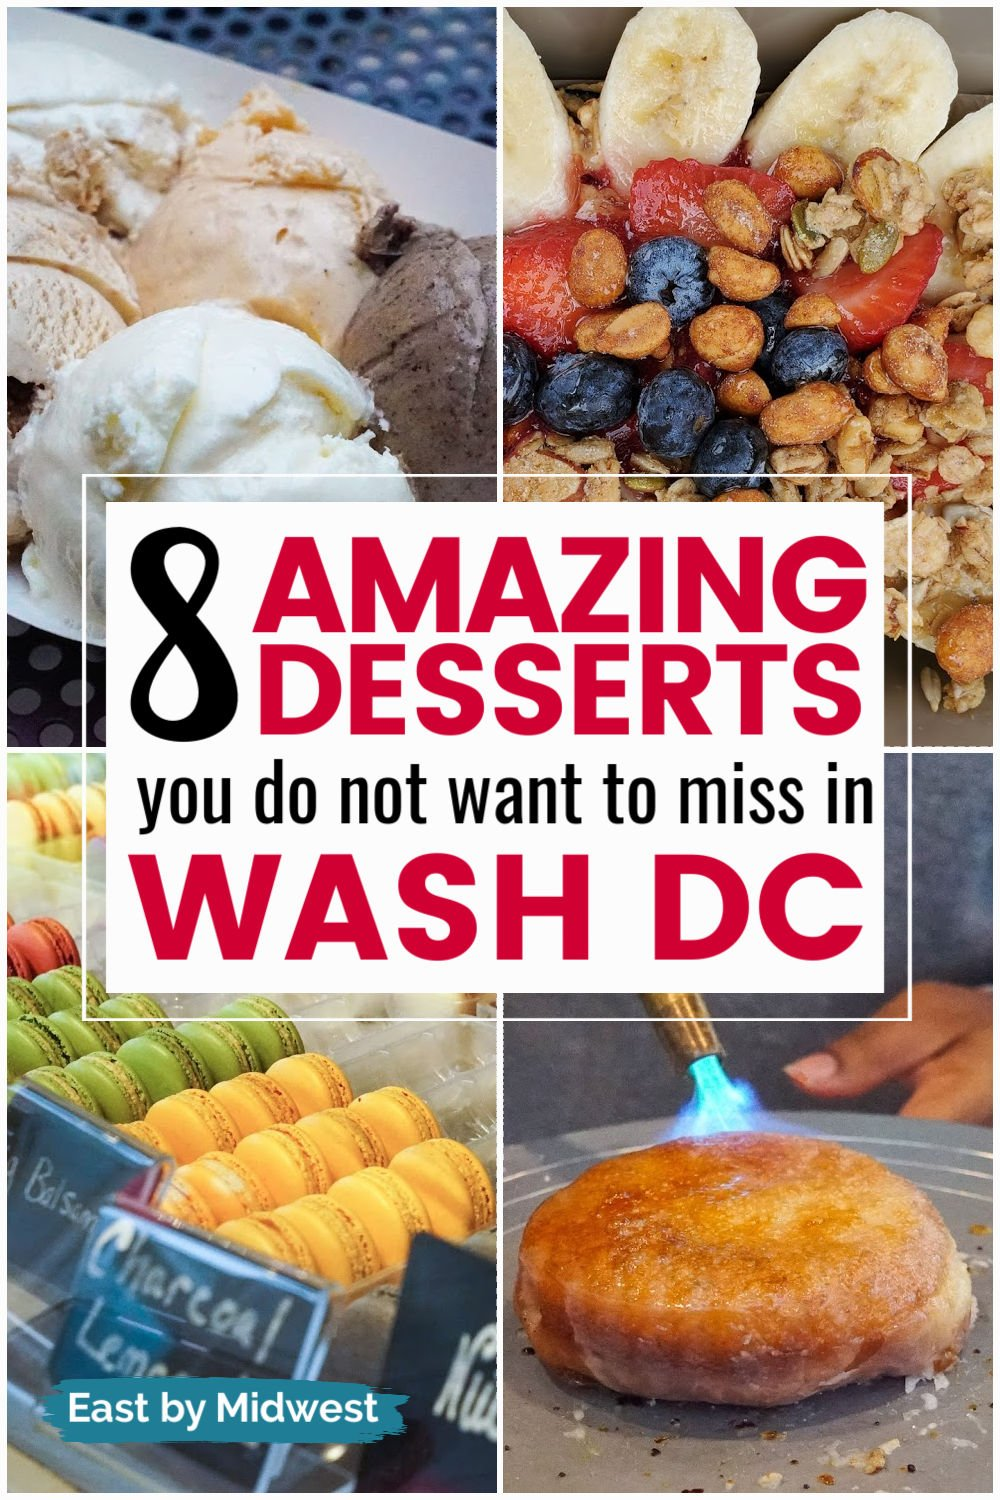 8 Amazing Desserts in Washington DC That You Need to Try